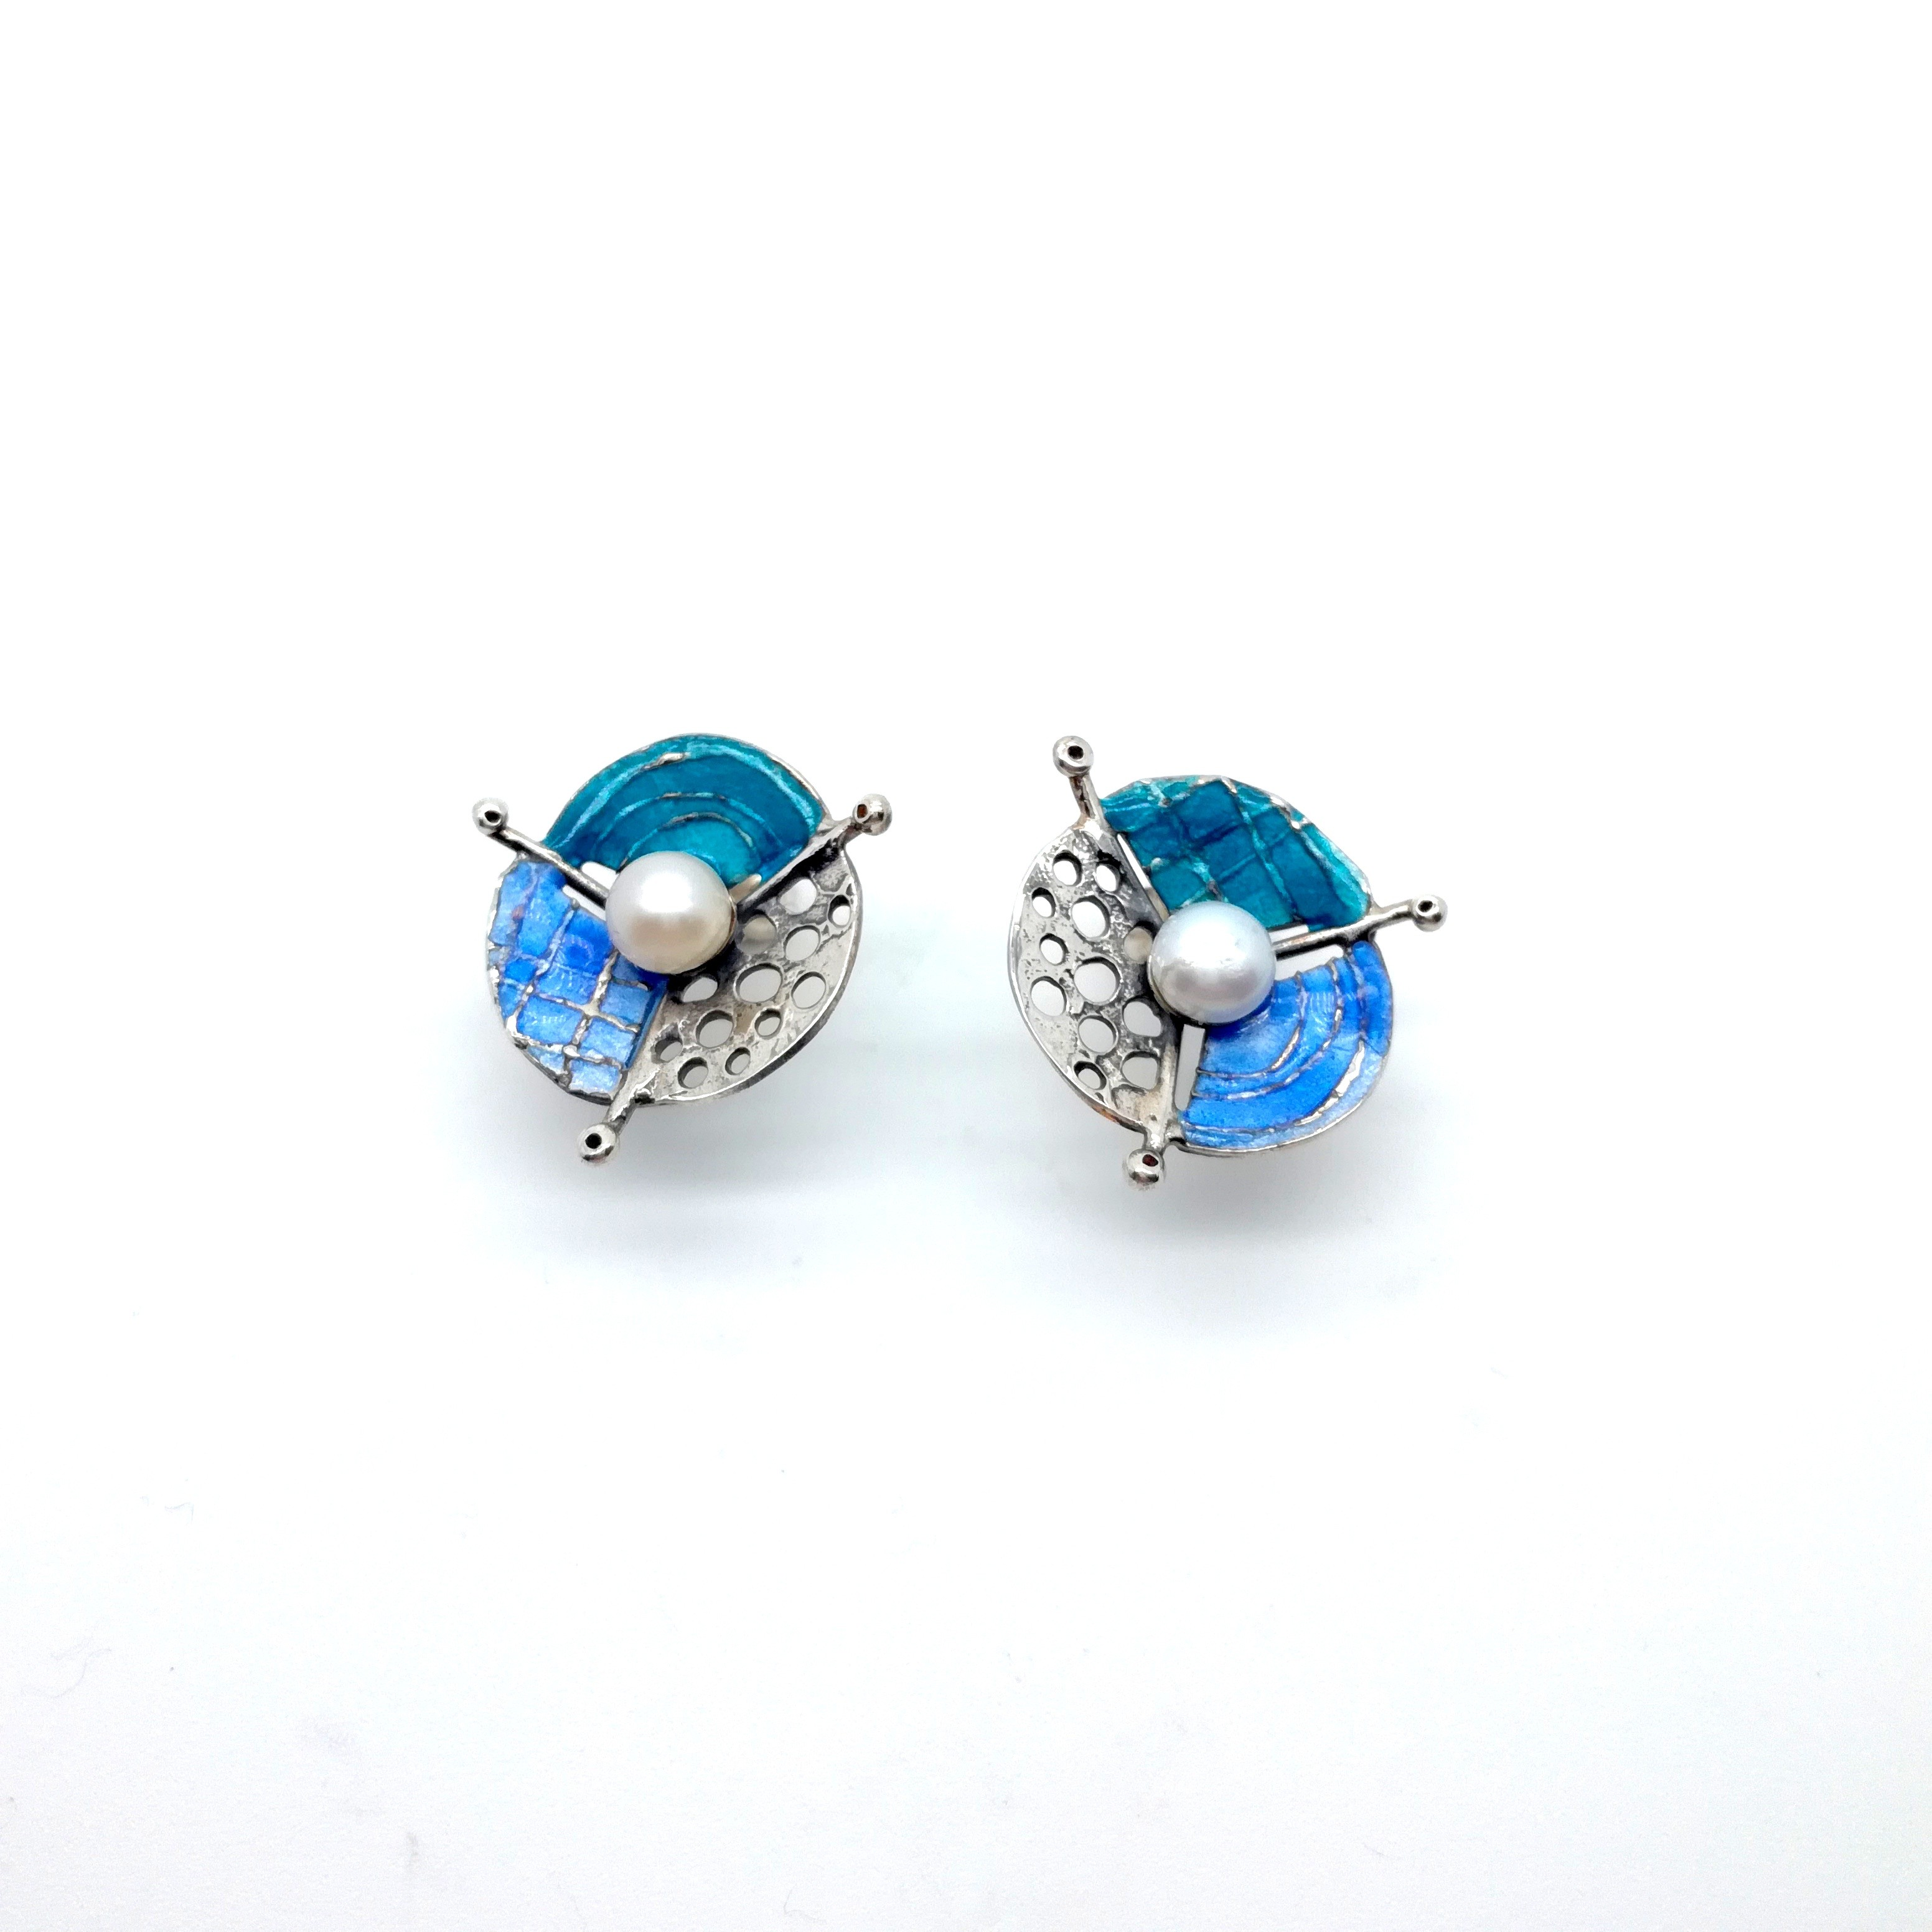 Silver earrings 925 with enamel and pearl